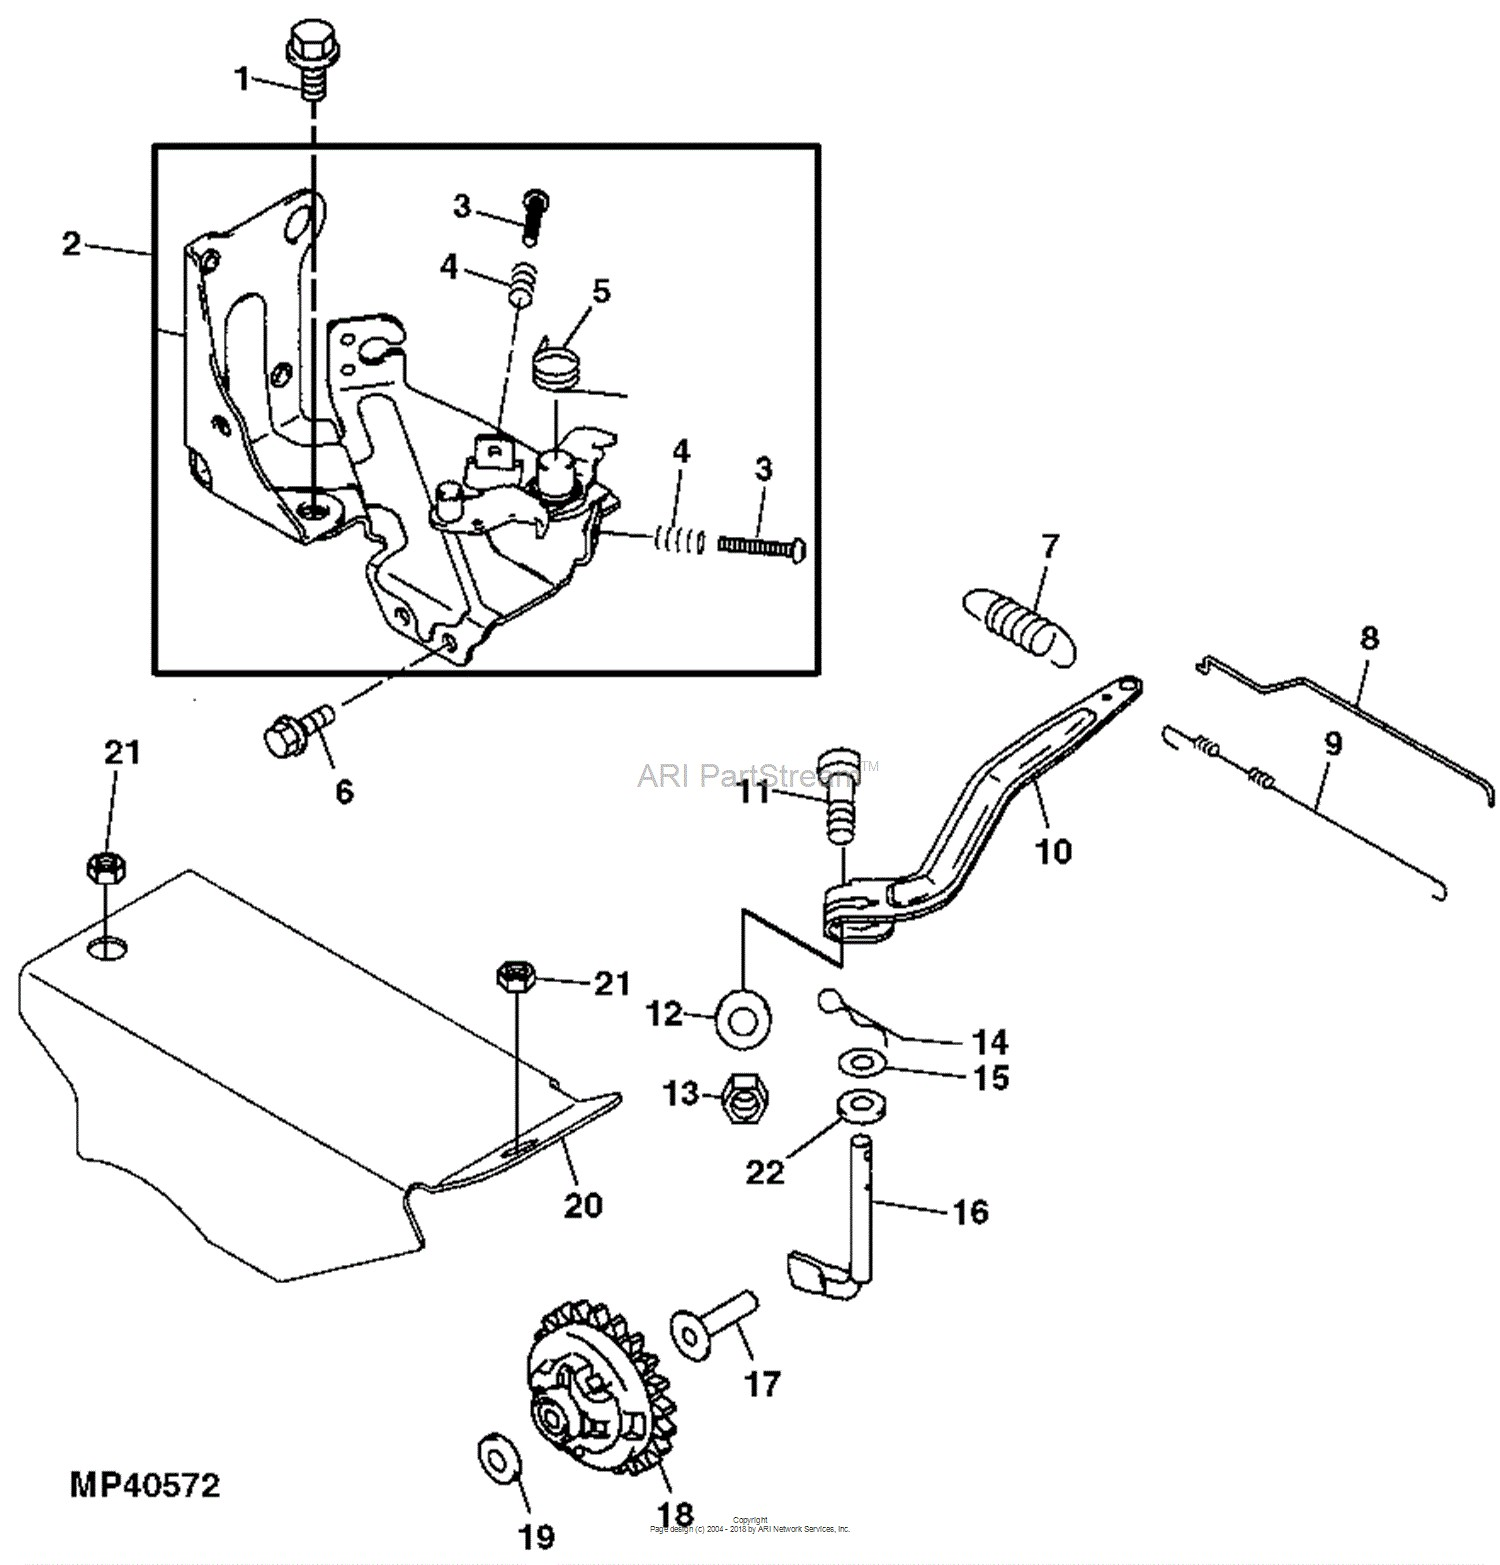 Car Parts Diagram for Engine John Deere Parts Diagrams